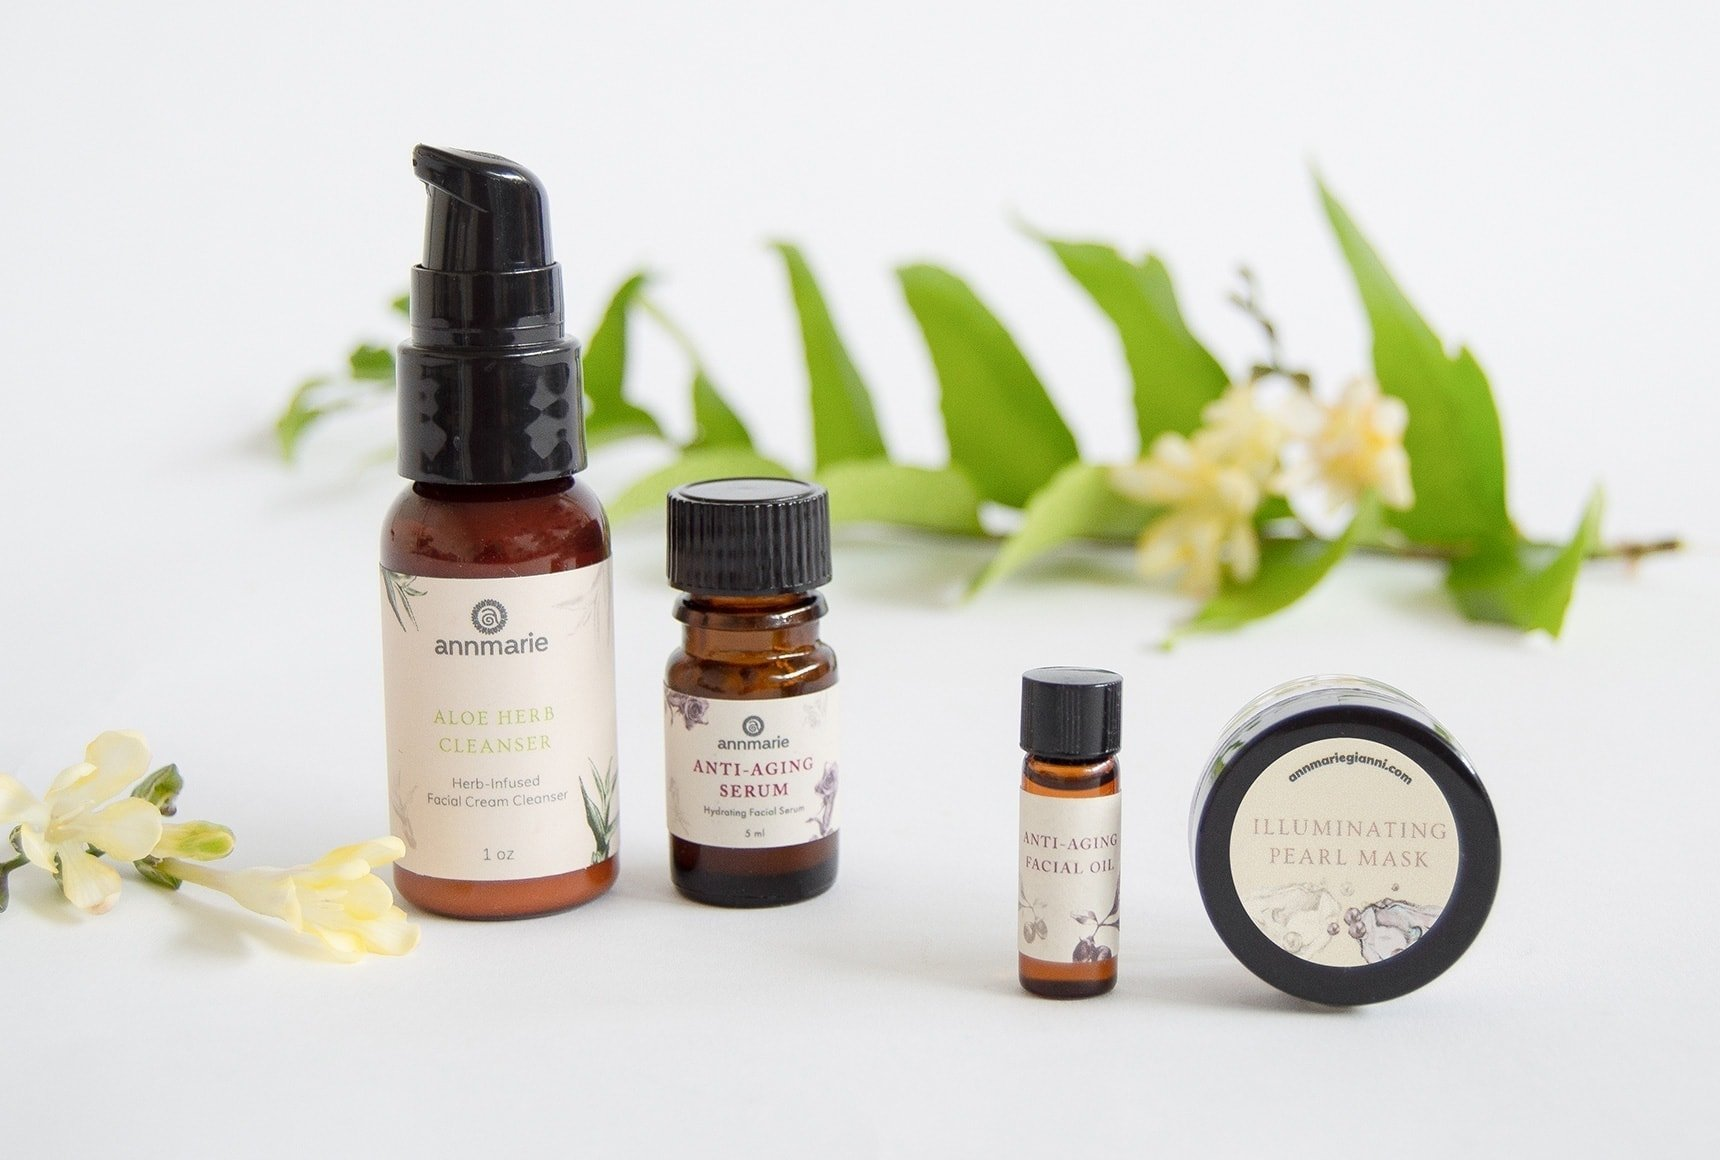 four safer skincare products on a table with a green leaf in the background